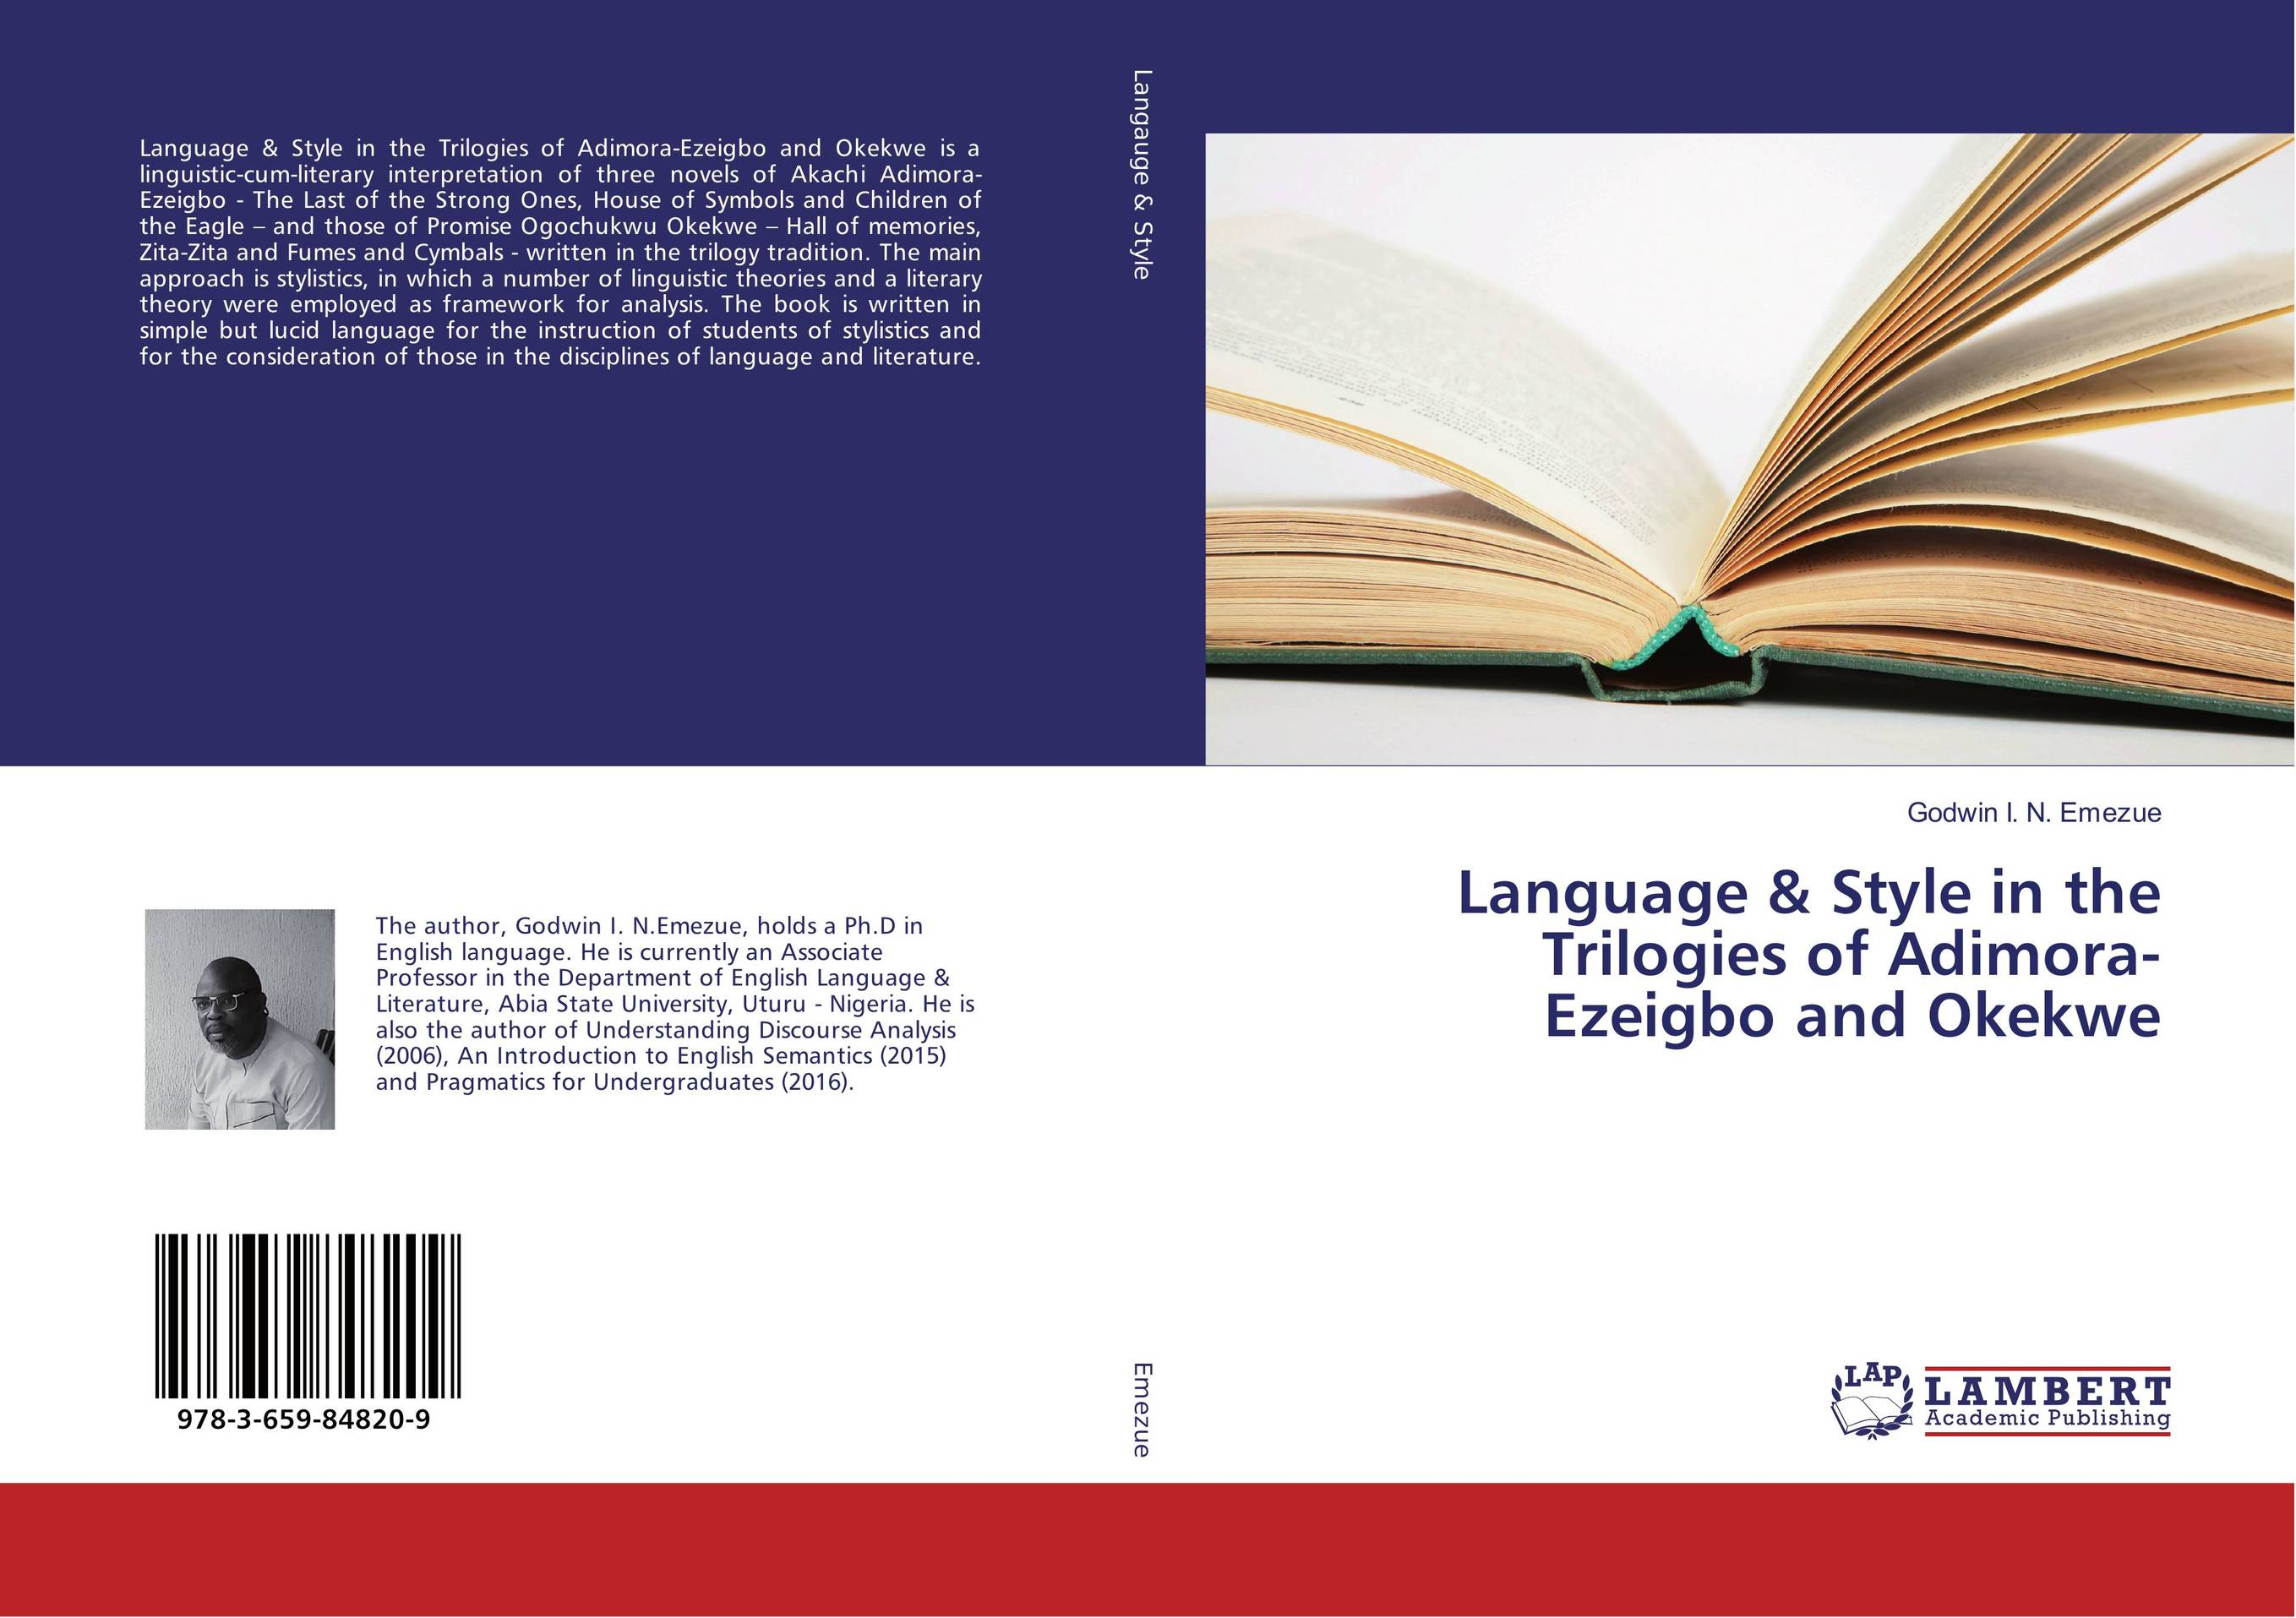 Language & Style in the Trilogies of Adimora-Ezeigbo and Okekwe the internal load analysis in soccer